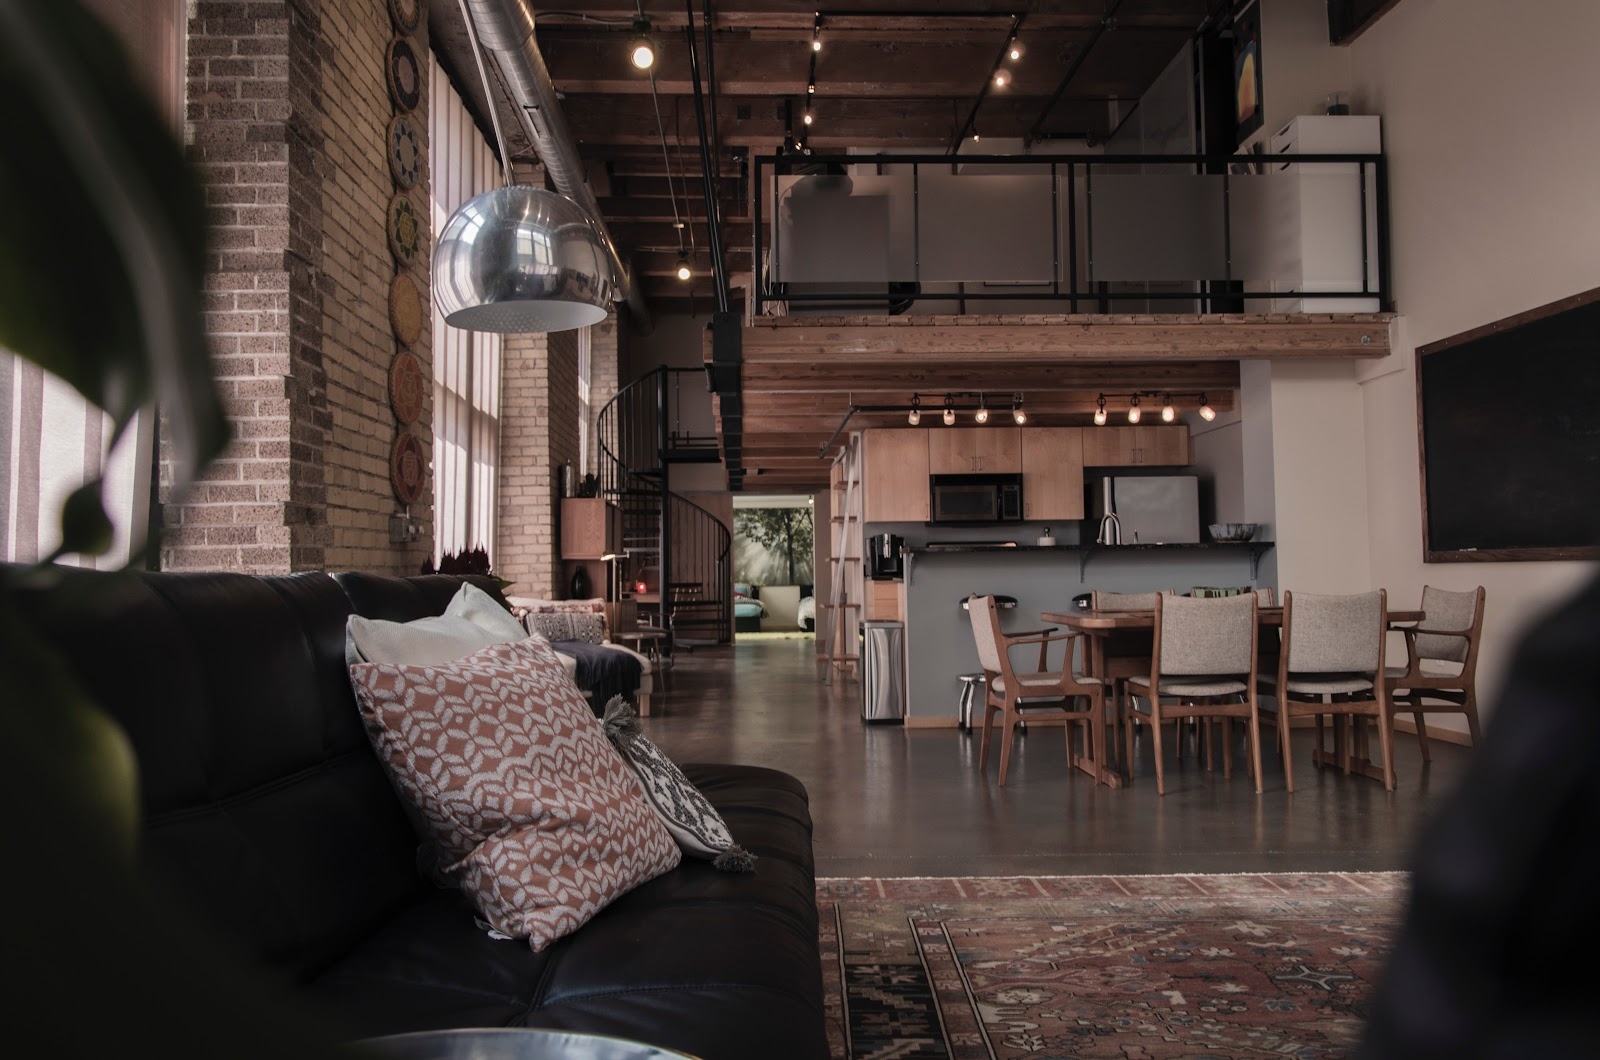 Interior real estate shot of industrial loft space